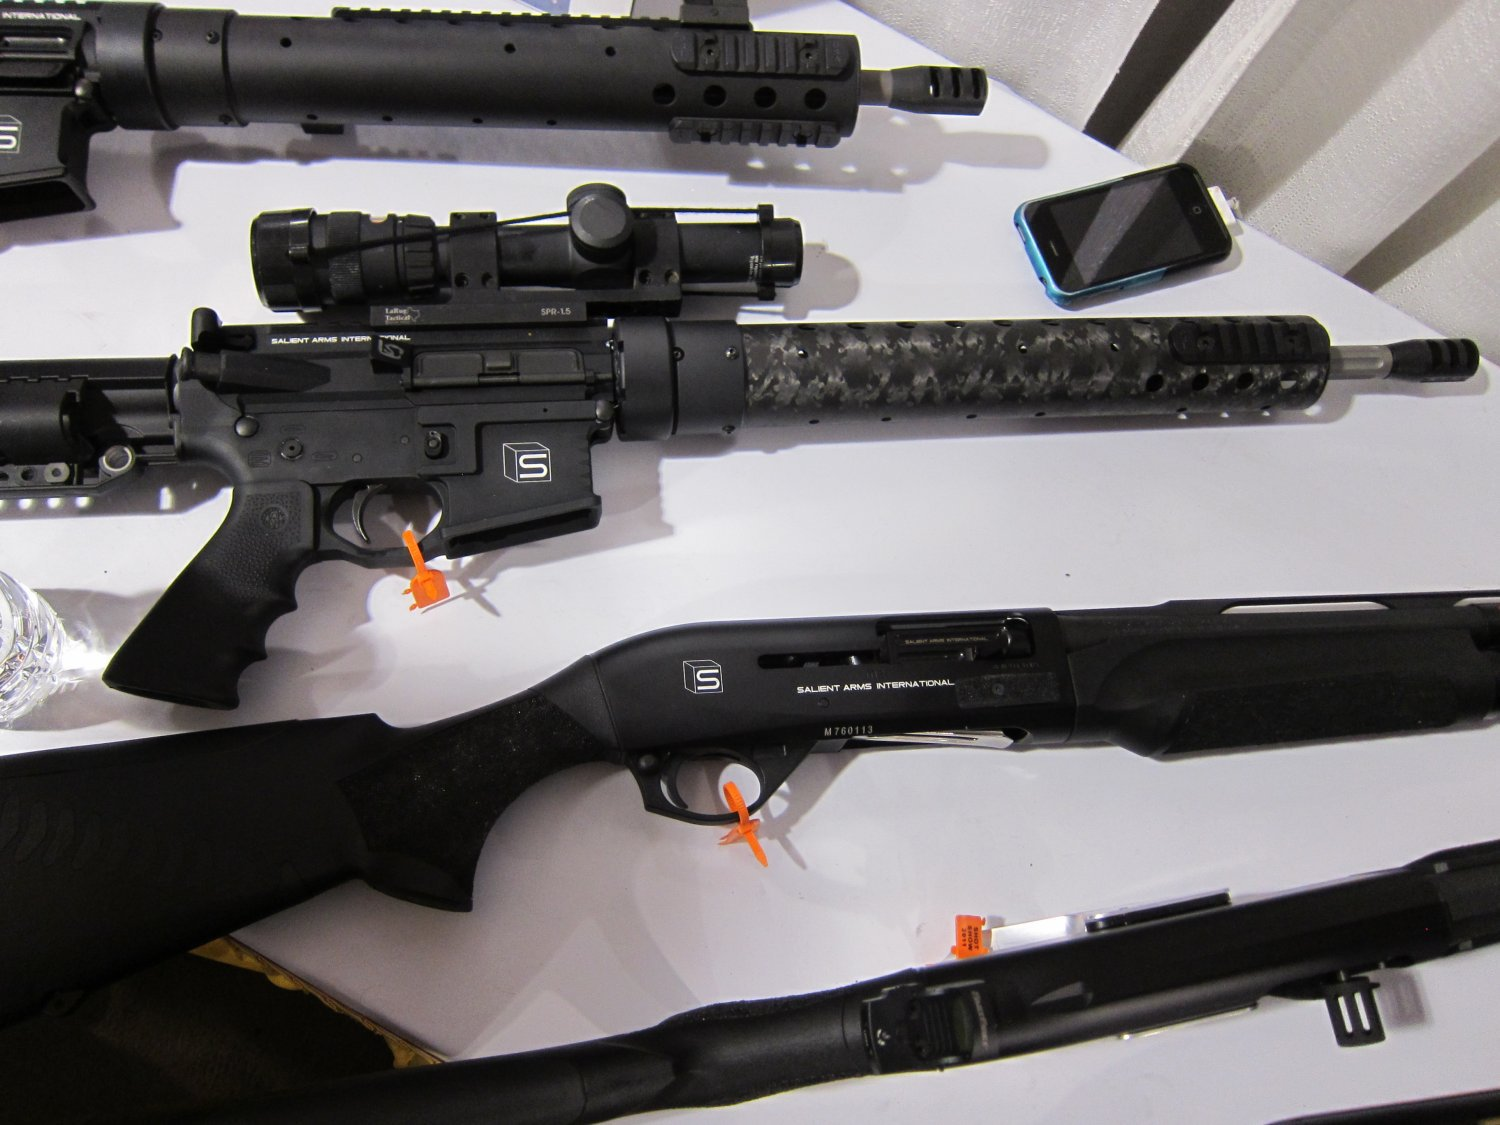 Salient Arms International Custom AR 15 Rifles and Benelli M2 Super 90 Shotguns 1 <!  :en  >Salient Arms International (SAI) Custom Pistols, Rifles, and Shotguns for Competition and Carry Displayed at SHOT Show 2011 <!  :  >